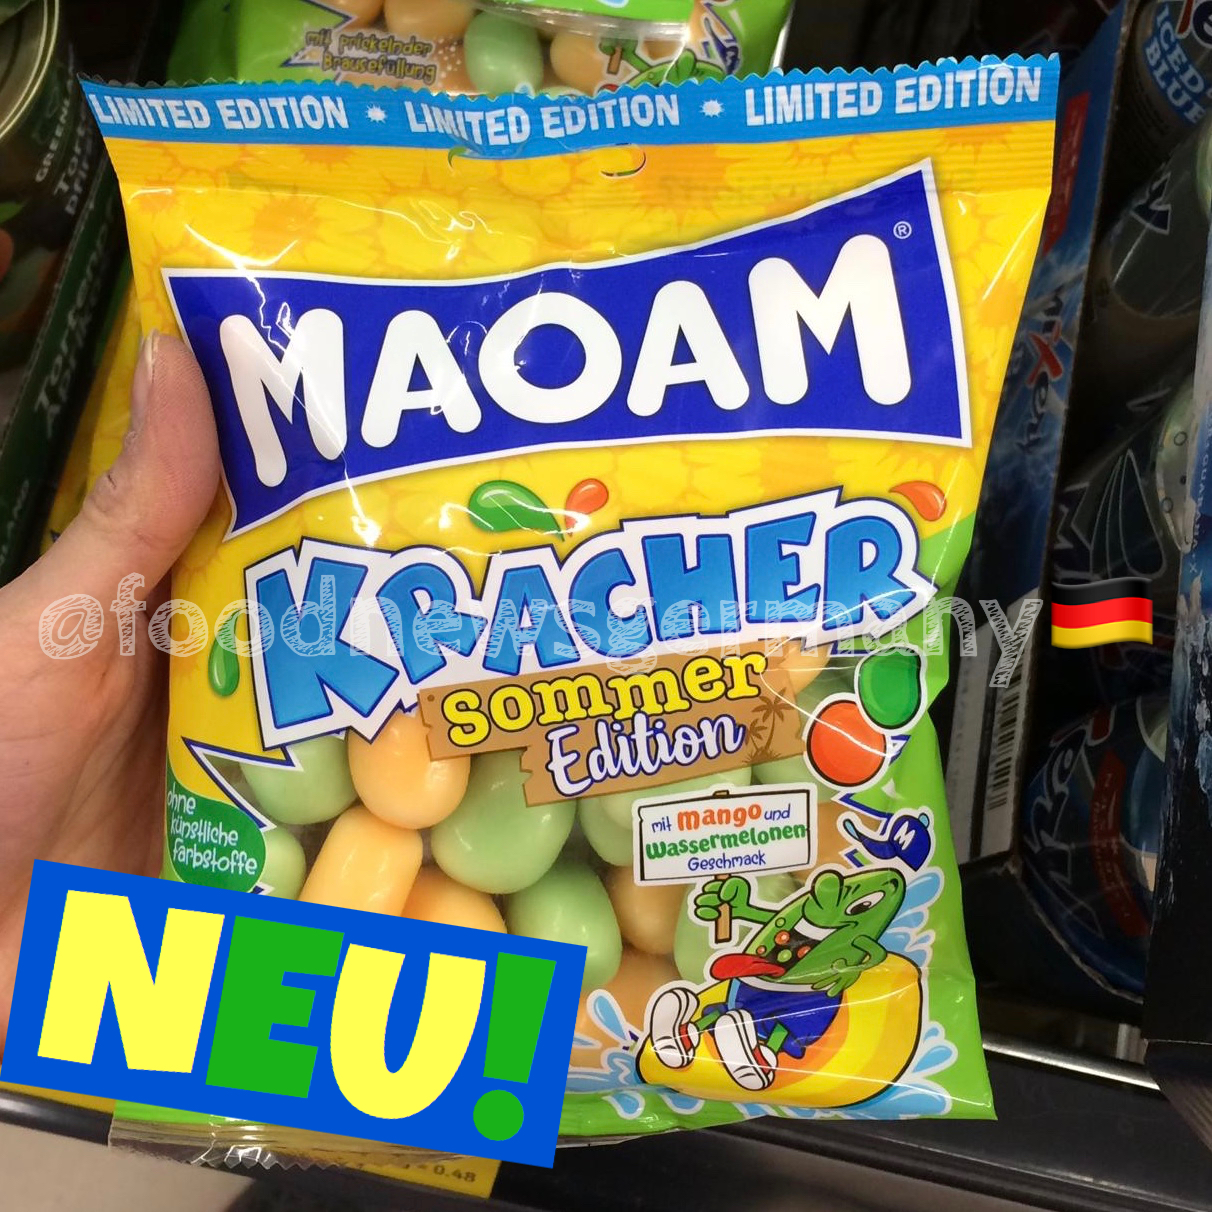 Maoam Kracher Sommer Edition